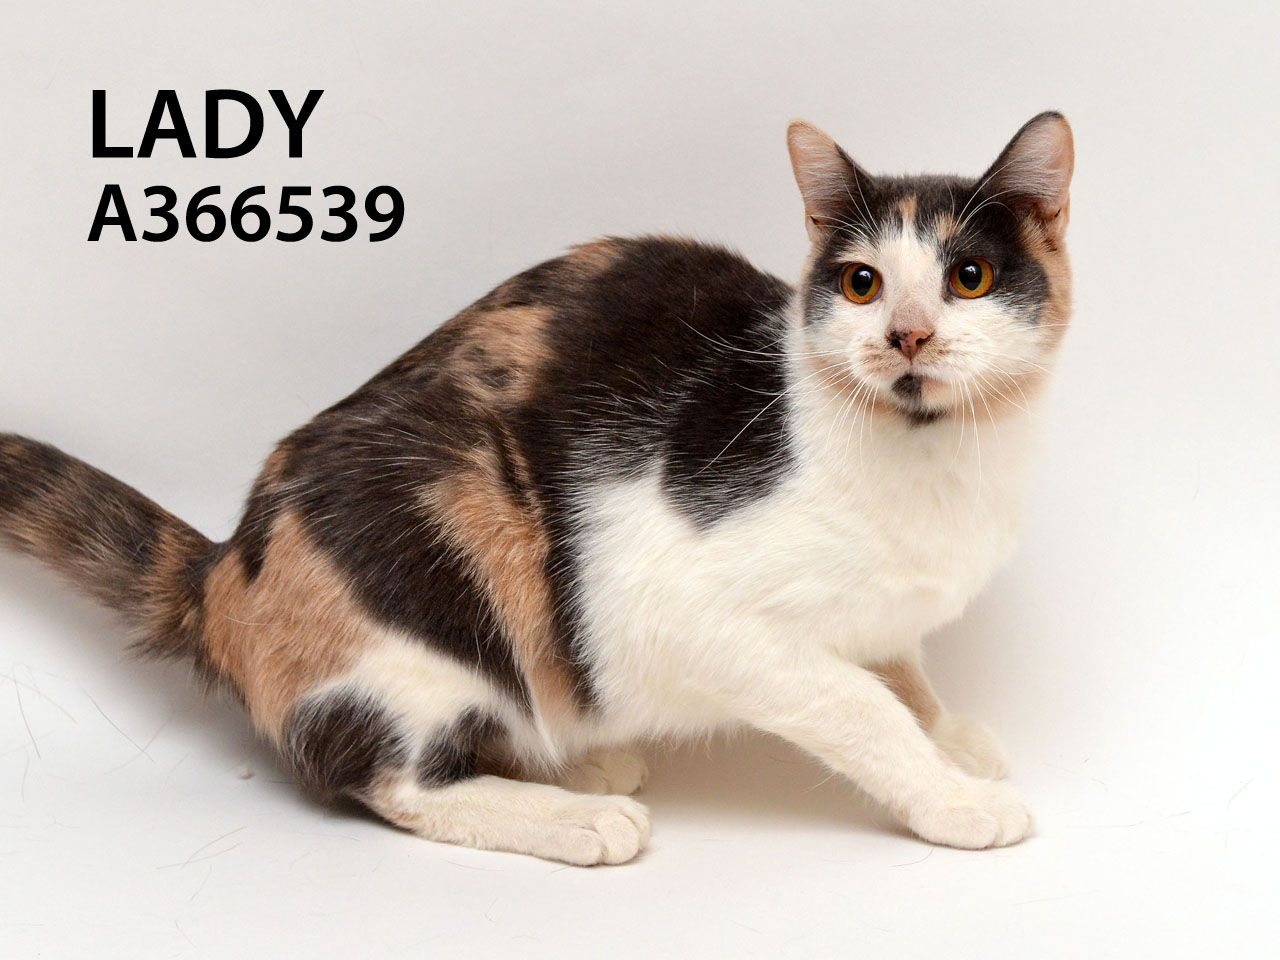 Lady (ID A366539) is a very pretty and dainty 10 month